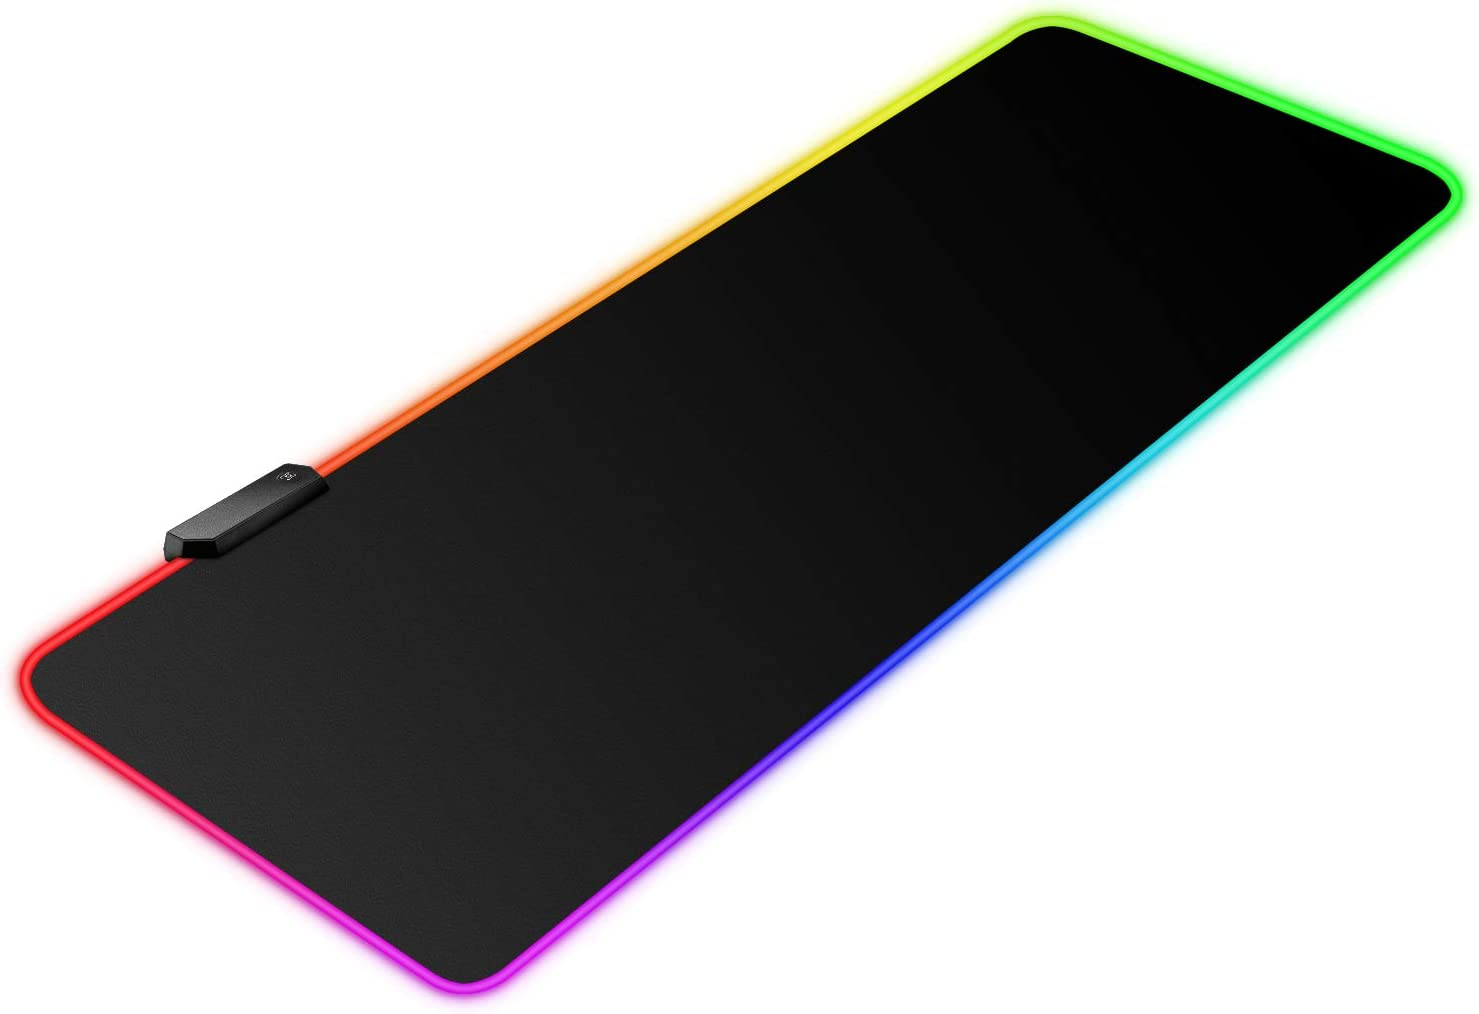 "BZseed RGB Gaming Mouse Pad X Large, Extended LED Mouse Pad 30% Larger Size(31.5""×11.8""), Anti-Slip Base Computer Keyboard Mouse Mat for Gaming Computer/Laptops/Office Desk"